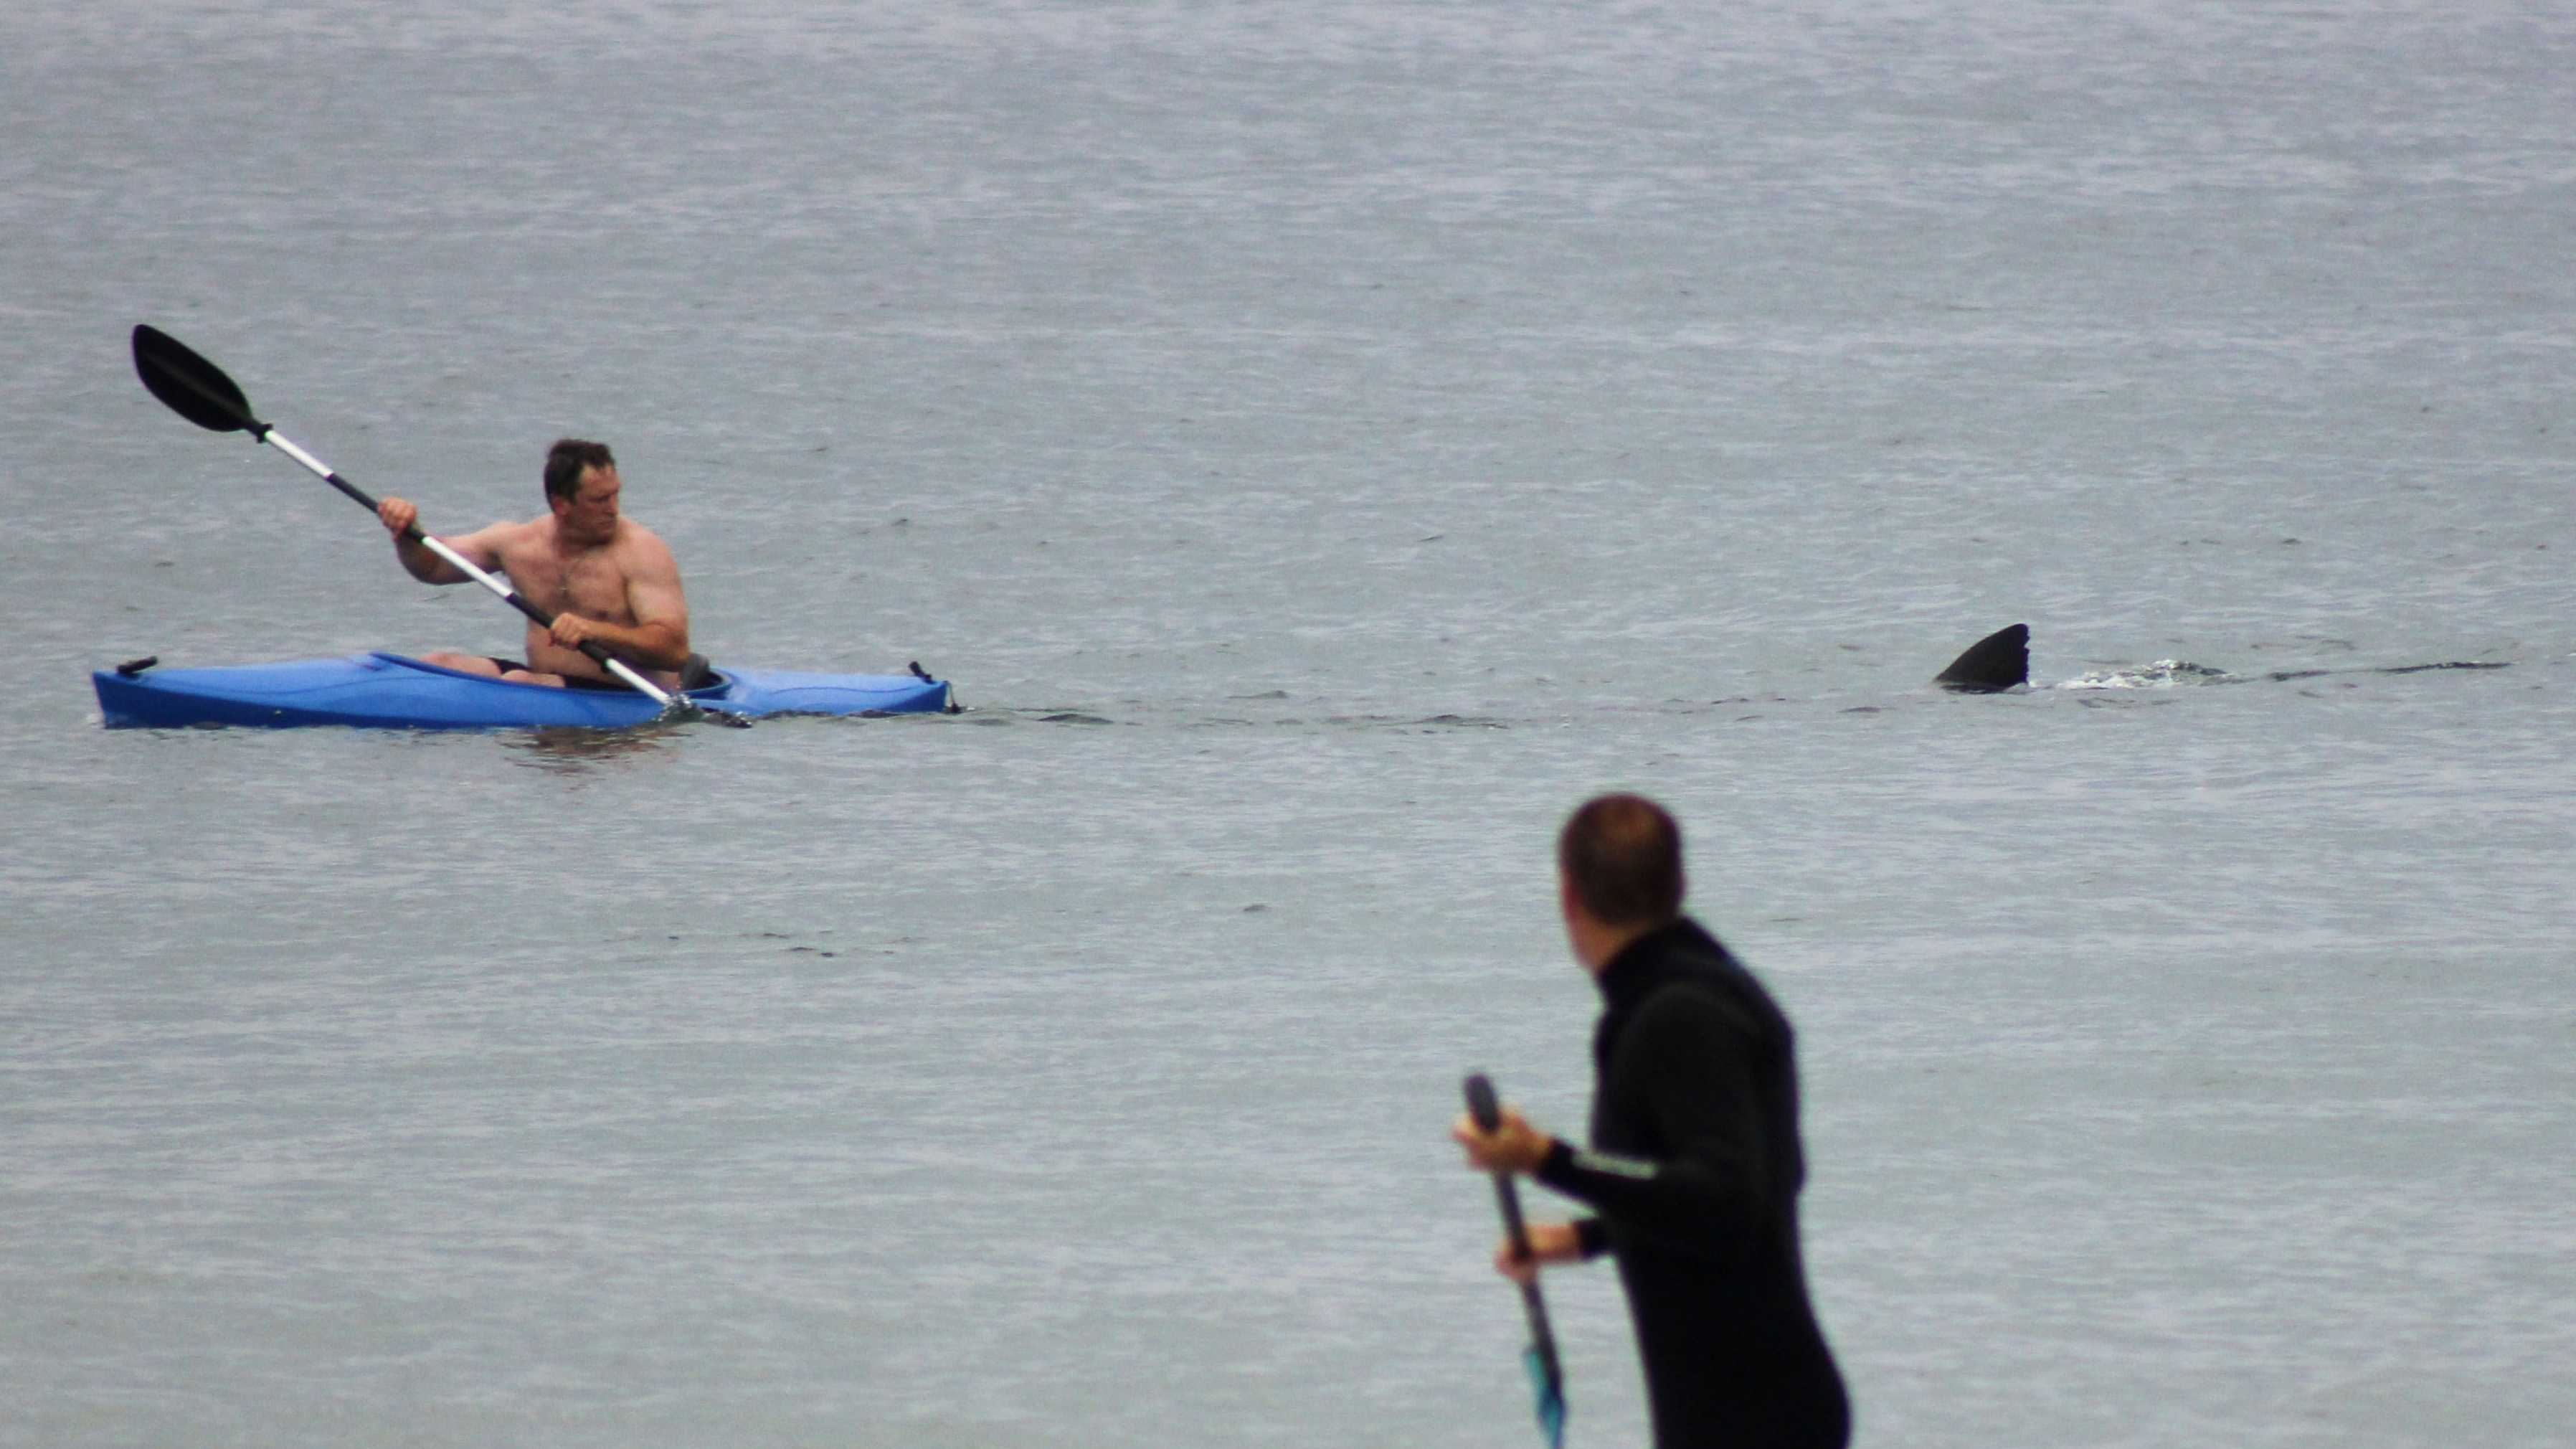 Walter Szulc Jr., in kayak at left, looks back at the dorsal fin of an approaching shark at Nauset Beach.